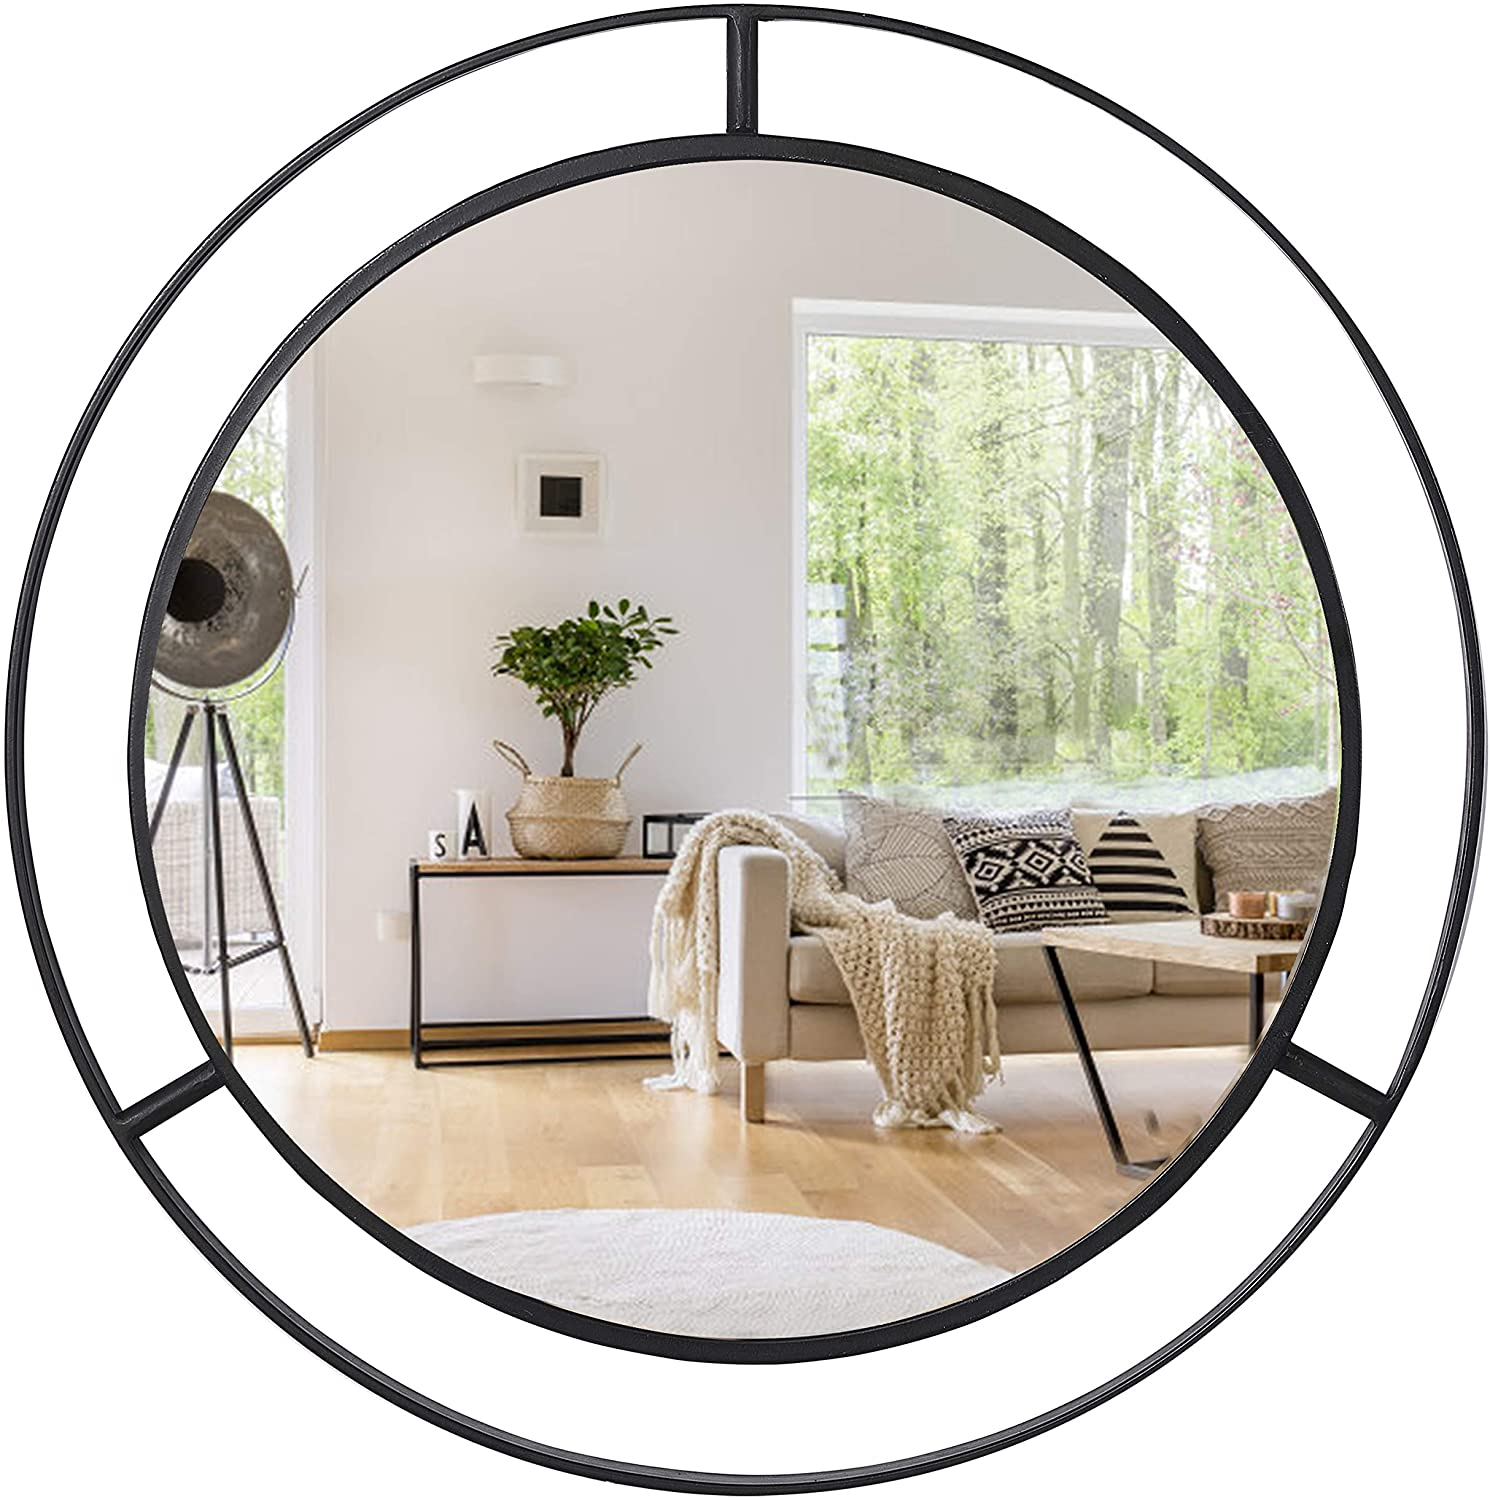 Amazon Com Decorative Mirrors For Wall Decor Round Wall Mirror With Circle Ring Frame For Bedroom Bathroom Living Room Entryway Kitchen Dining